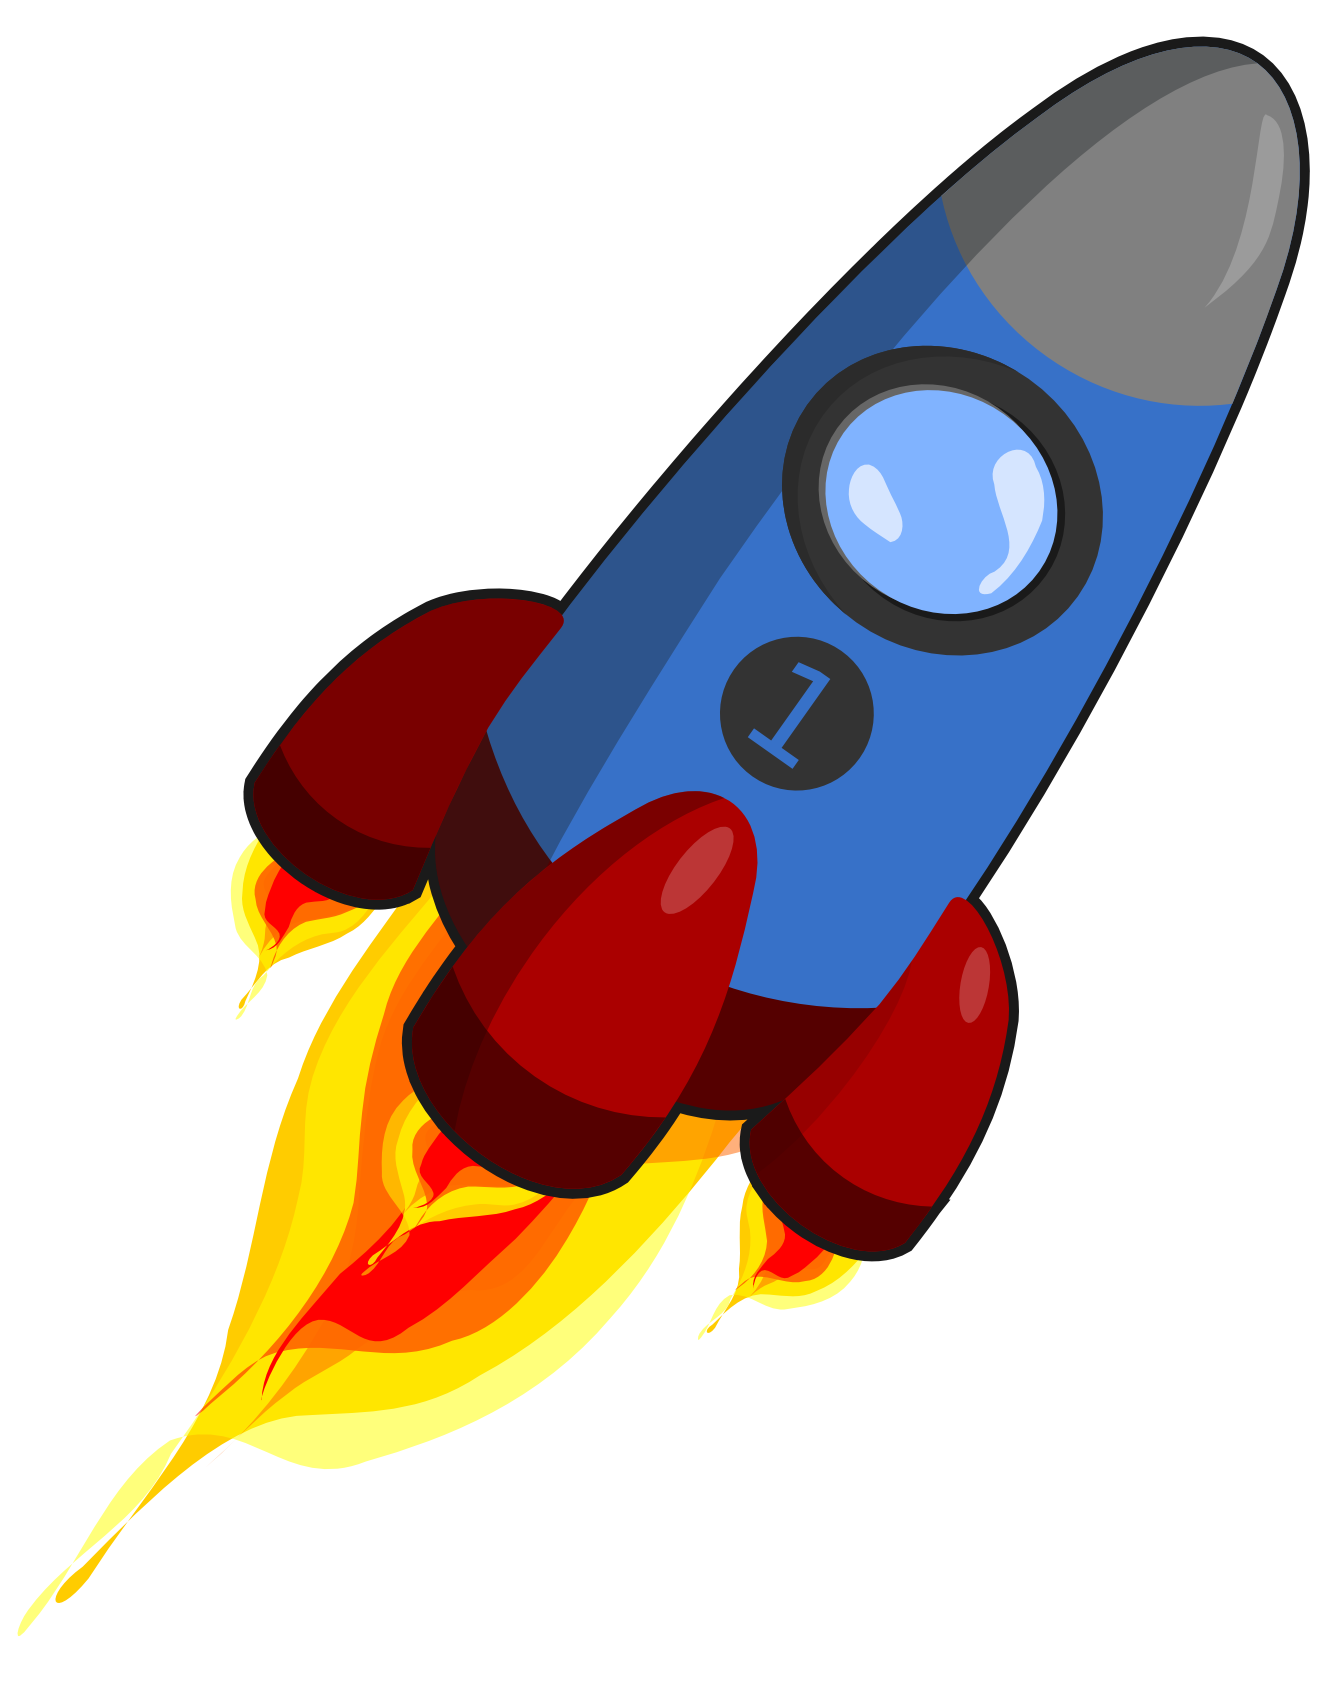 Rocket Blue And Red Christmas Xmas Electronics Toy Coloring Book